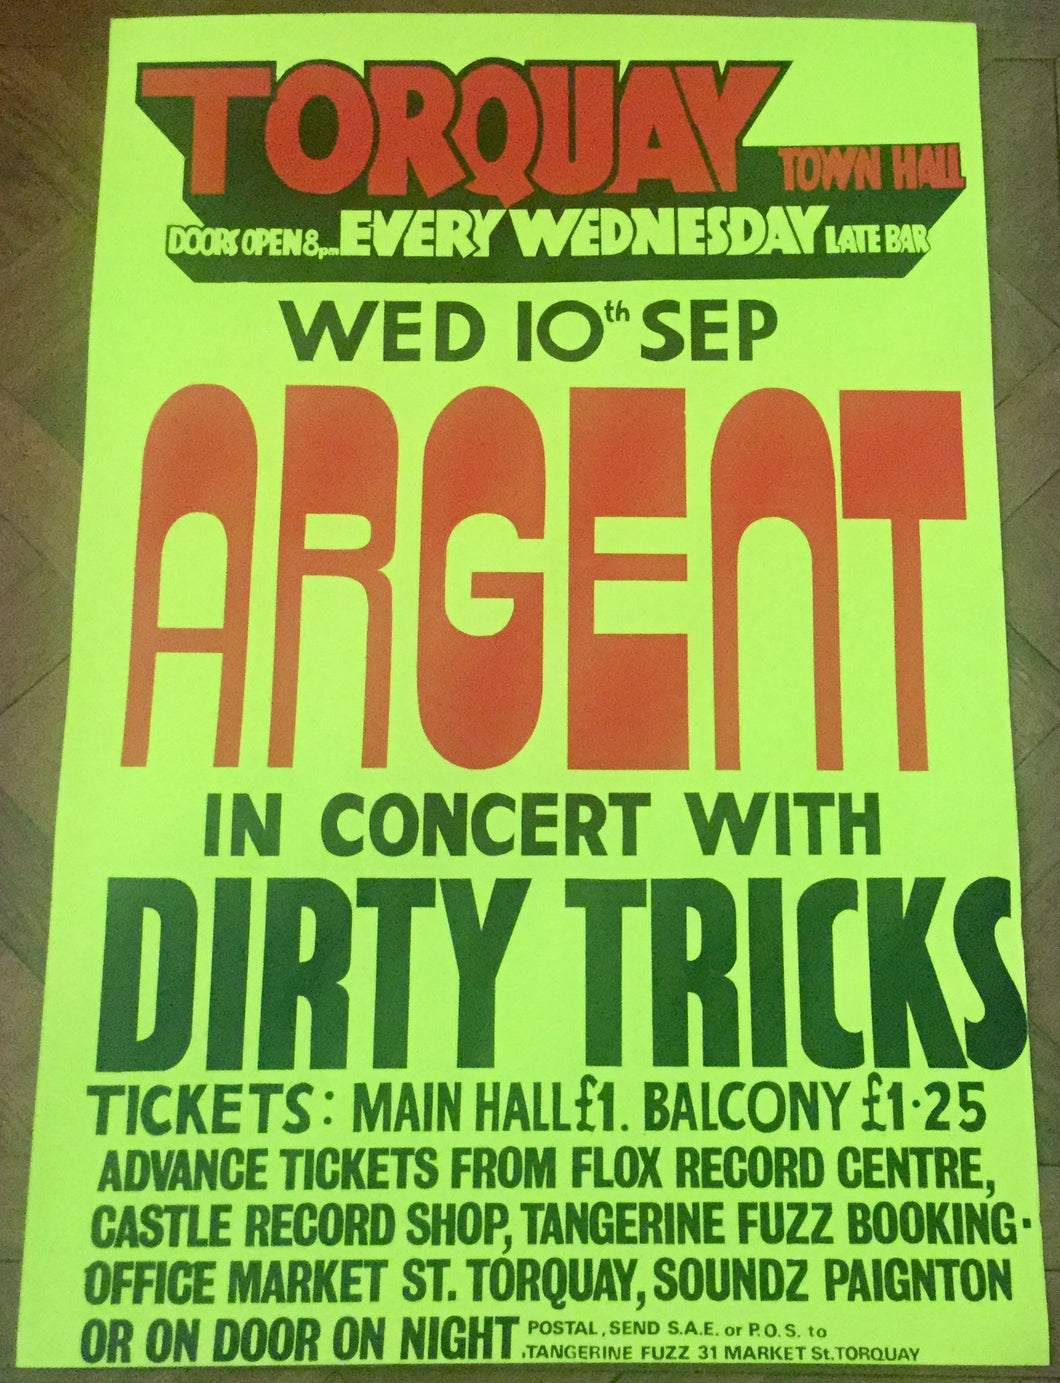 Argent Original Concert Tour Gig Poster Torquay Town Hall 10th Sept 1975